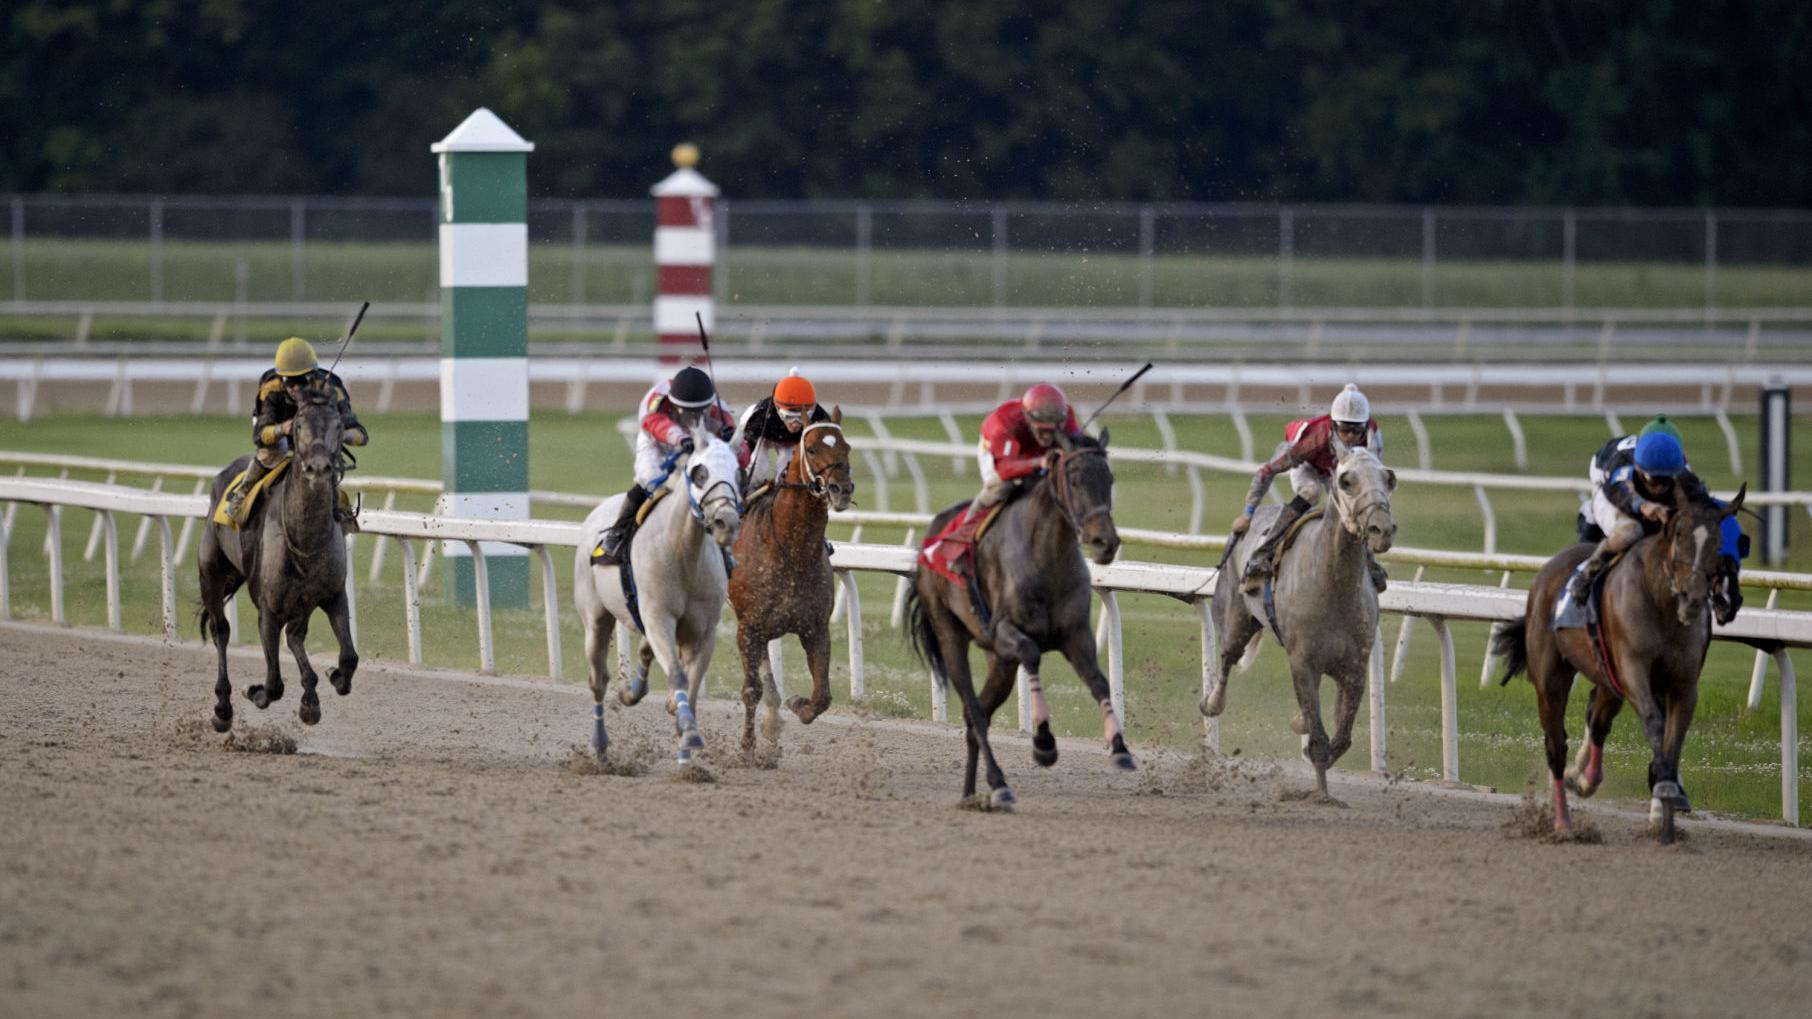 off track betting in baton rouge